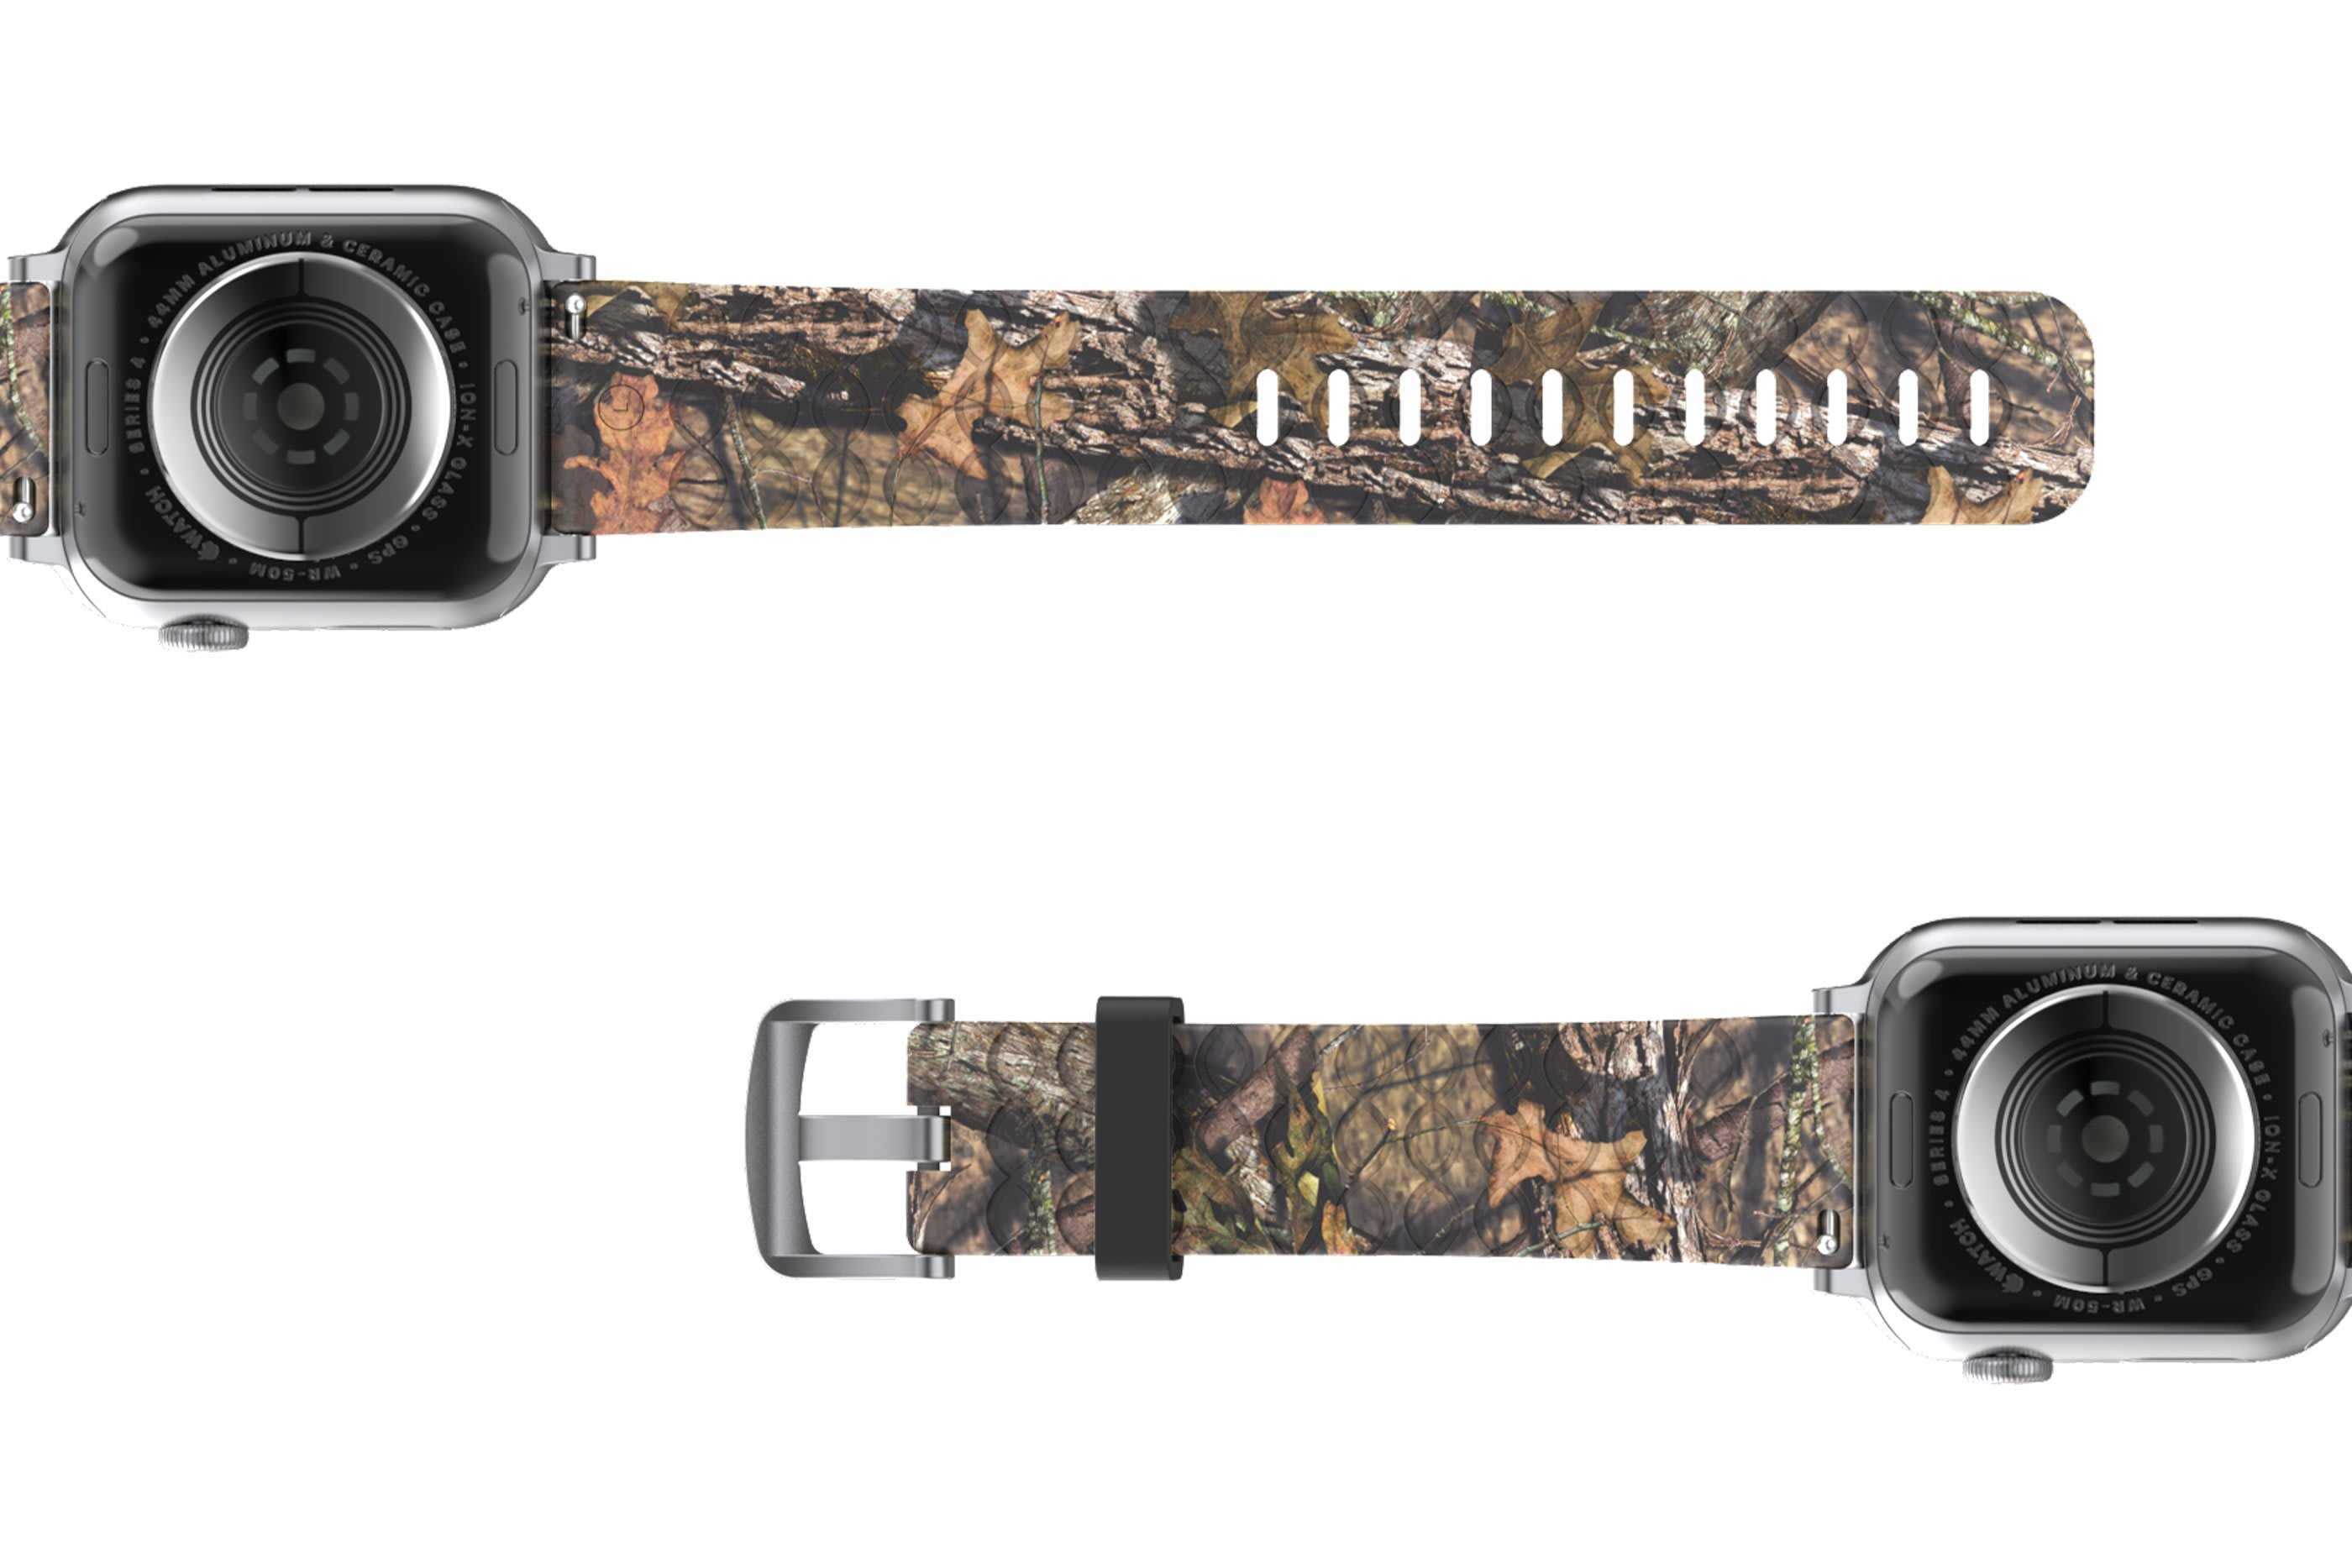 Mossy Oak Breakup Apple Watch Band with Silver hardware viewed bottom up